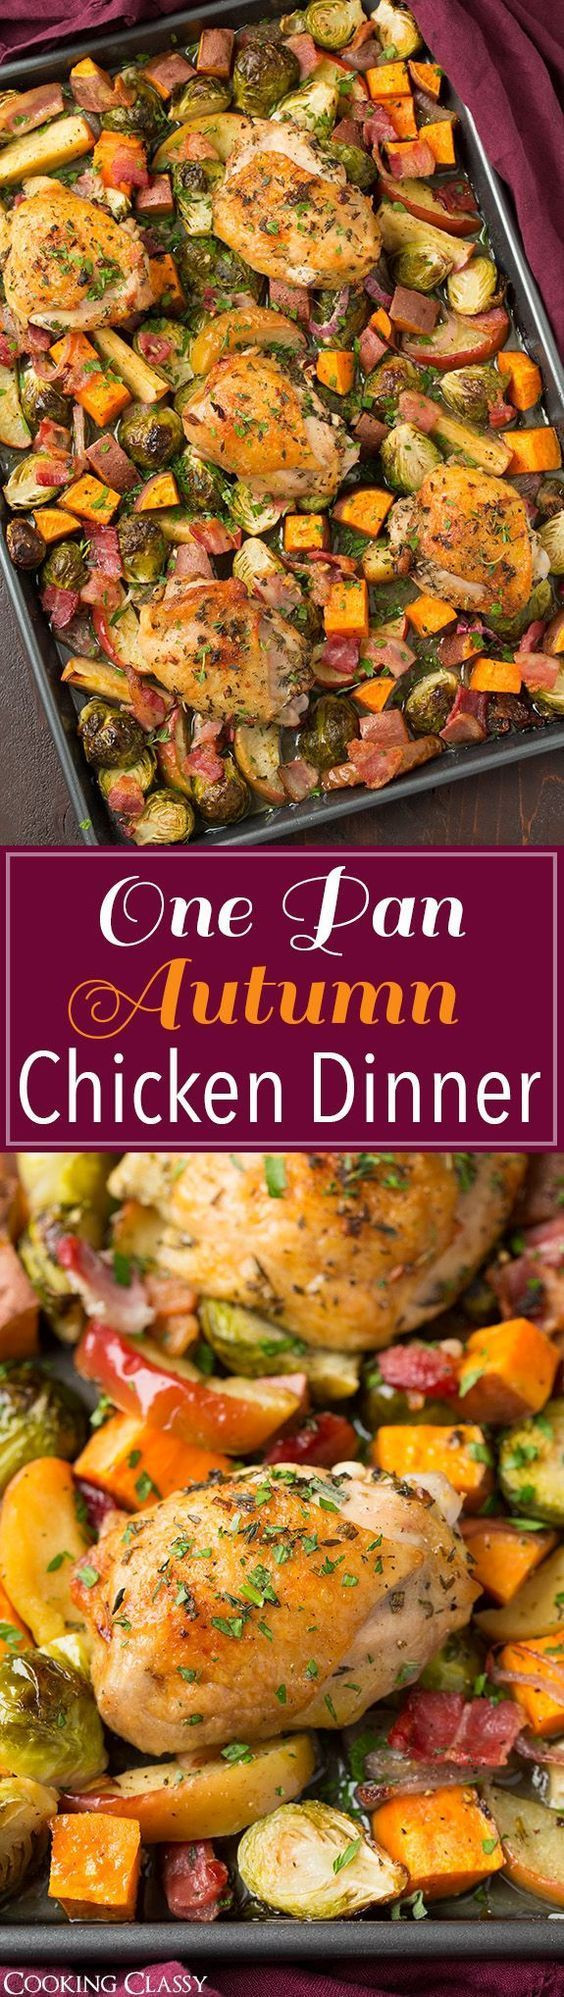 Fall Recipes Dinner  Best 25 Fall dinner recipes ideas on Pinterest